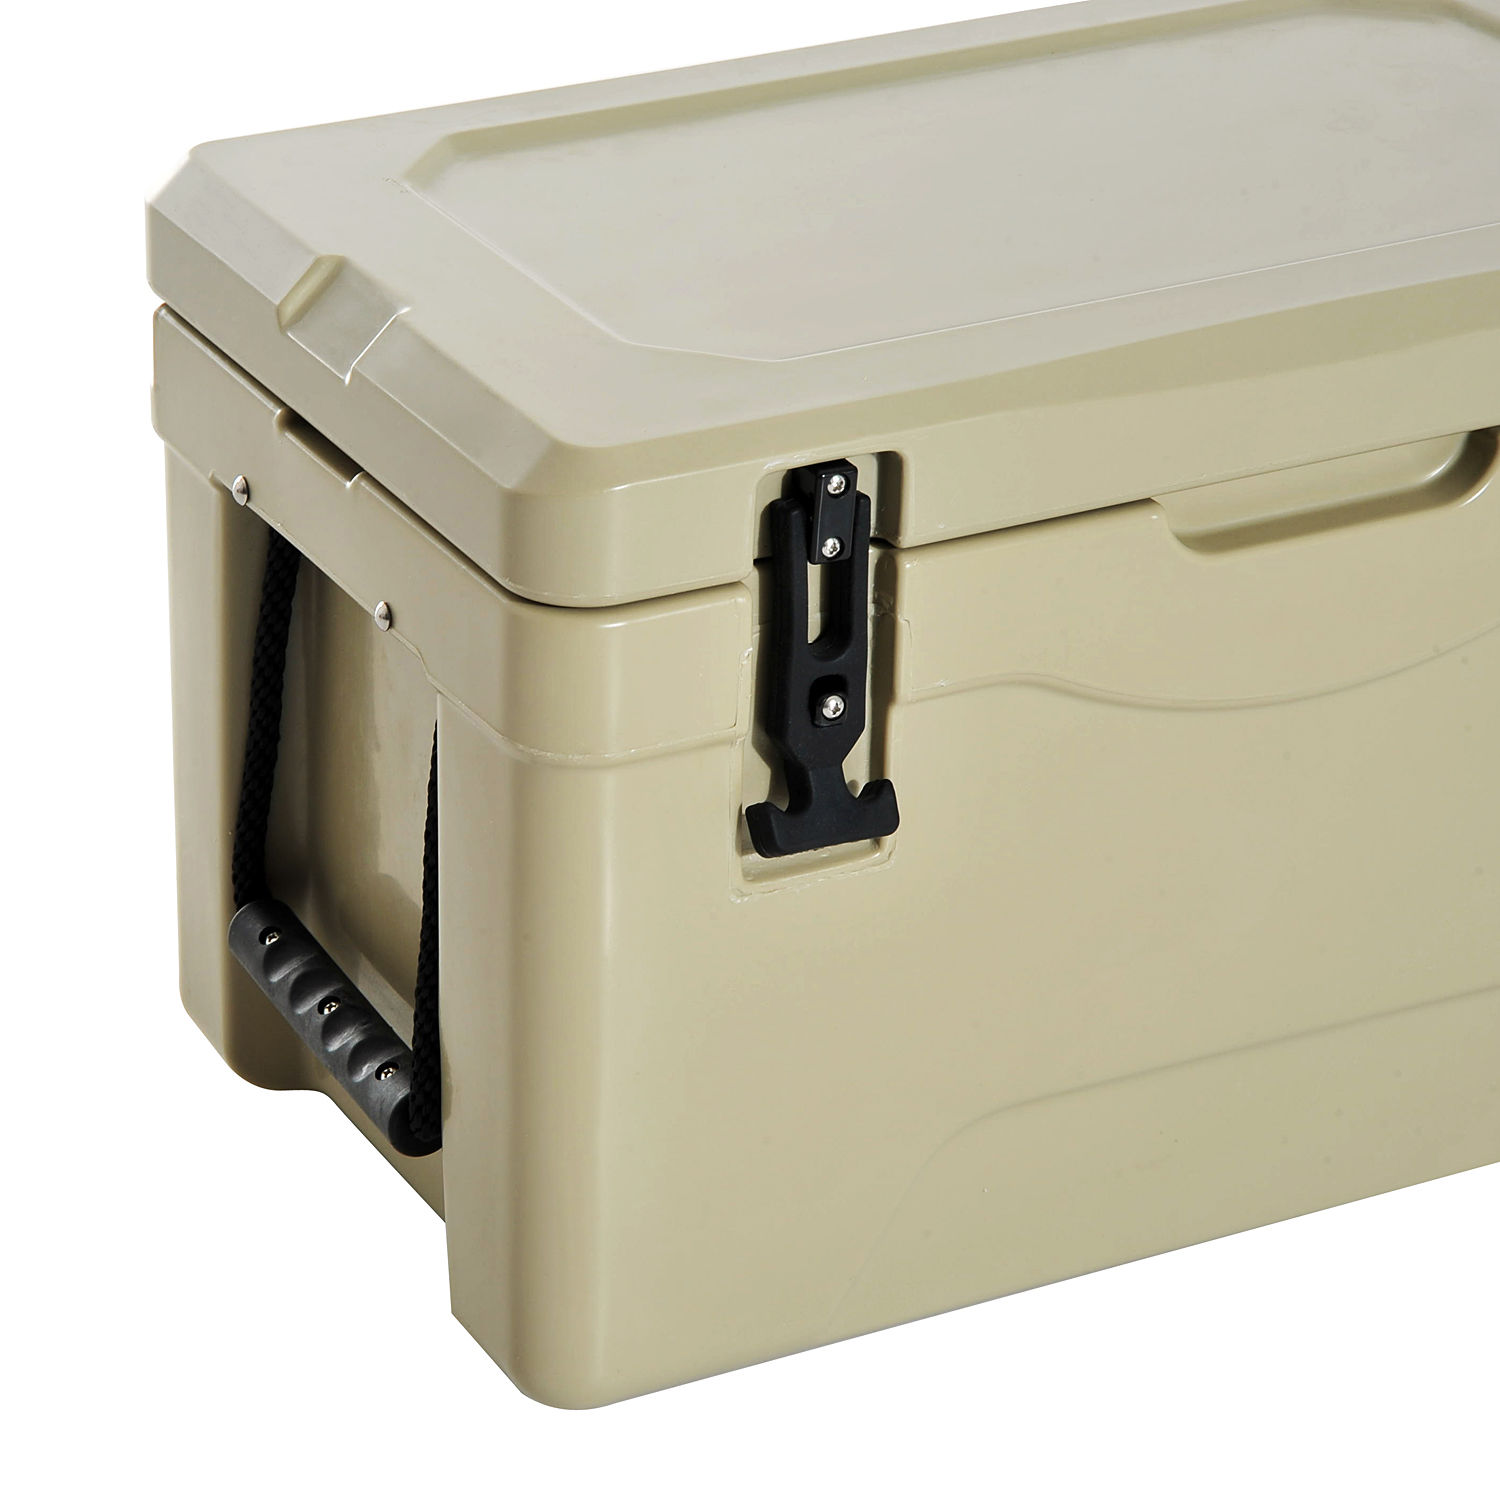 Ice Box Cooler : Food rotomolded cooler ice chest box cold drinks camping